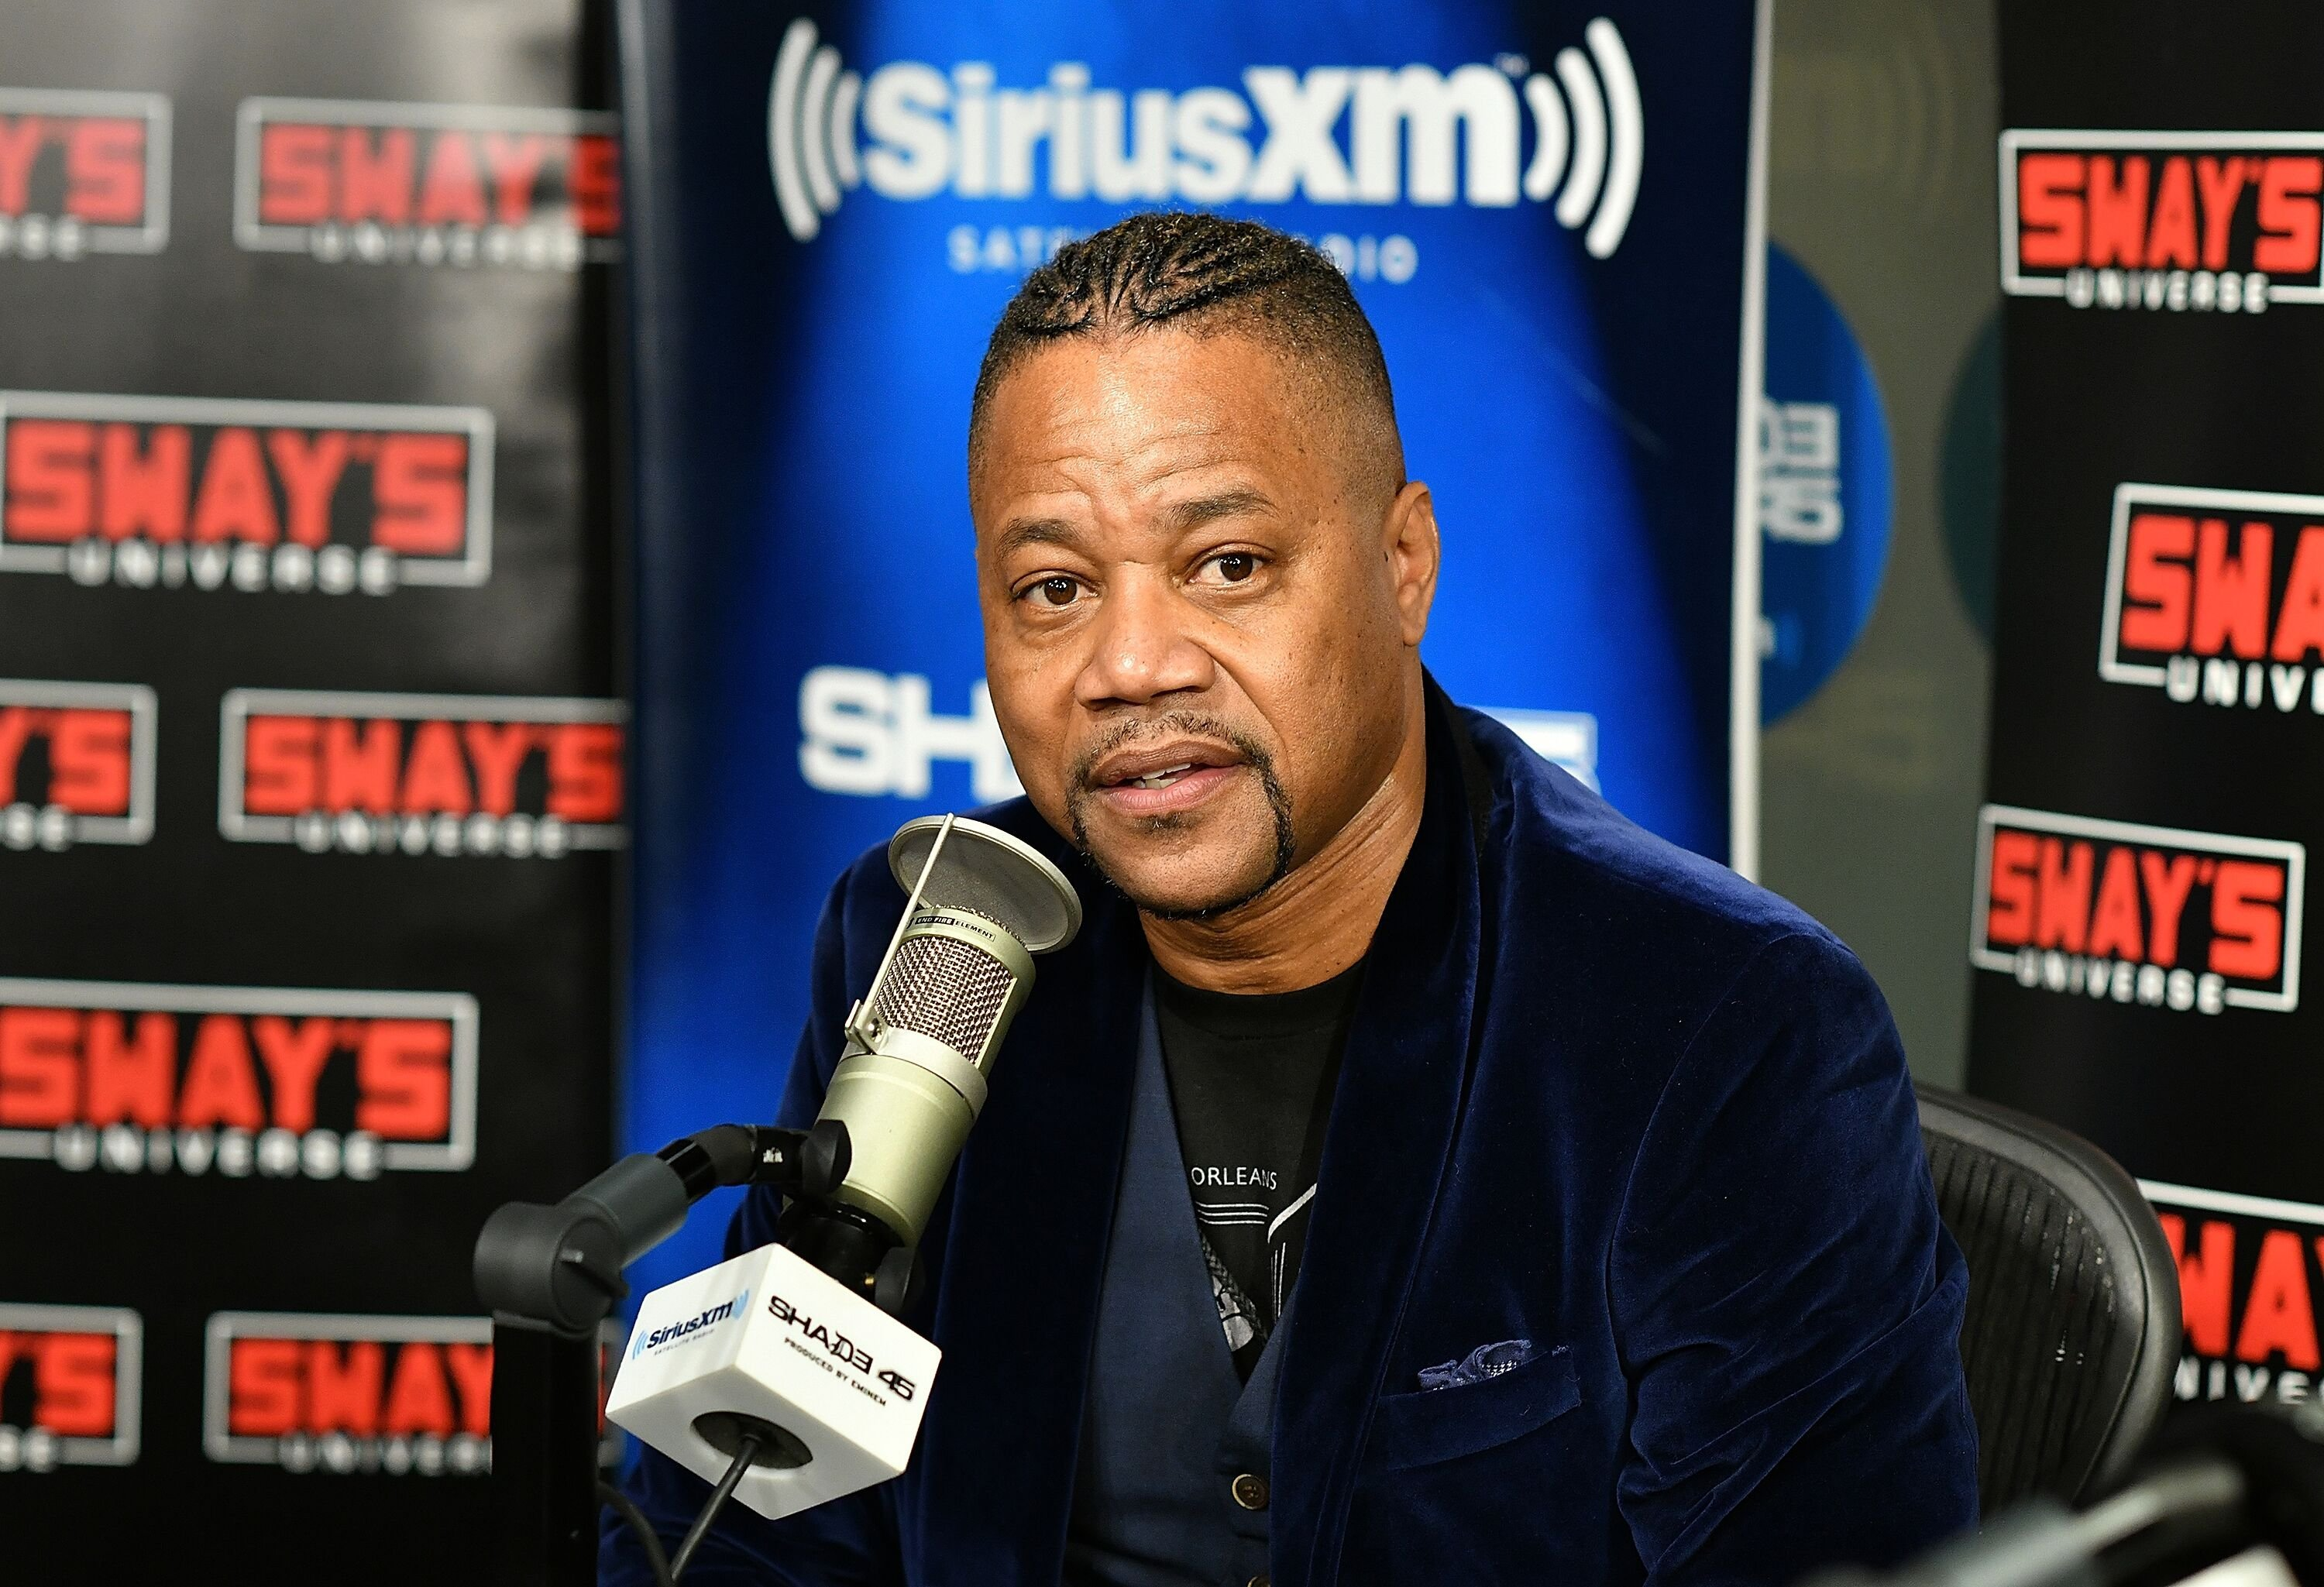 Cuba Gooding Jr. at a Sirius XM guesting | Source: Getty Images/GlobalImagesUkraine